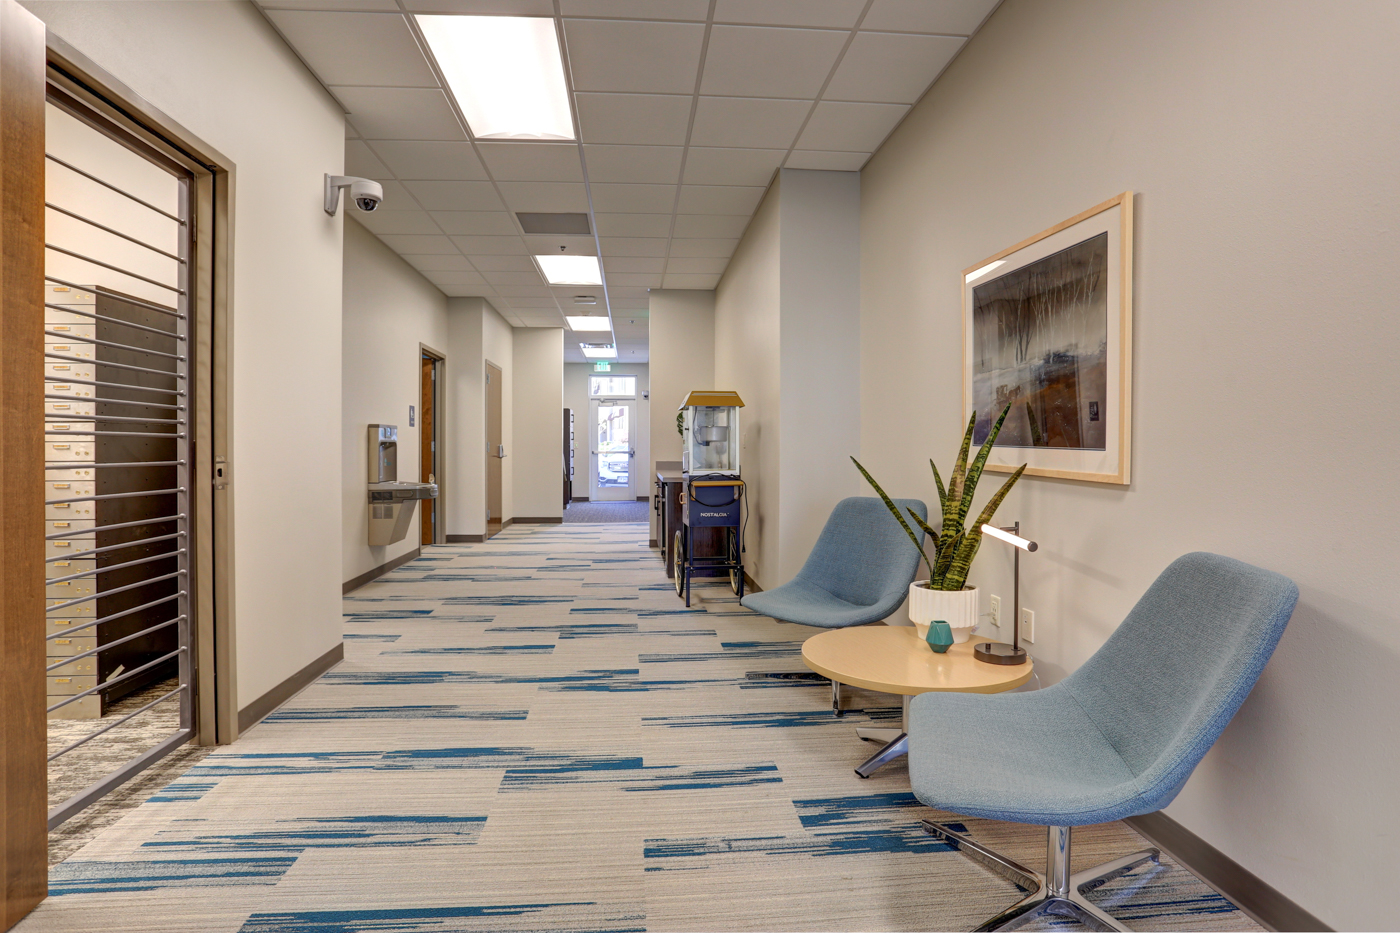 Med5 Credit Union's interior space